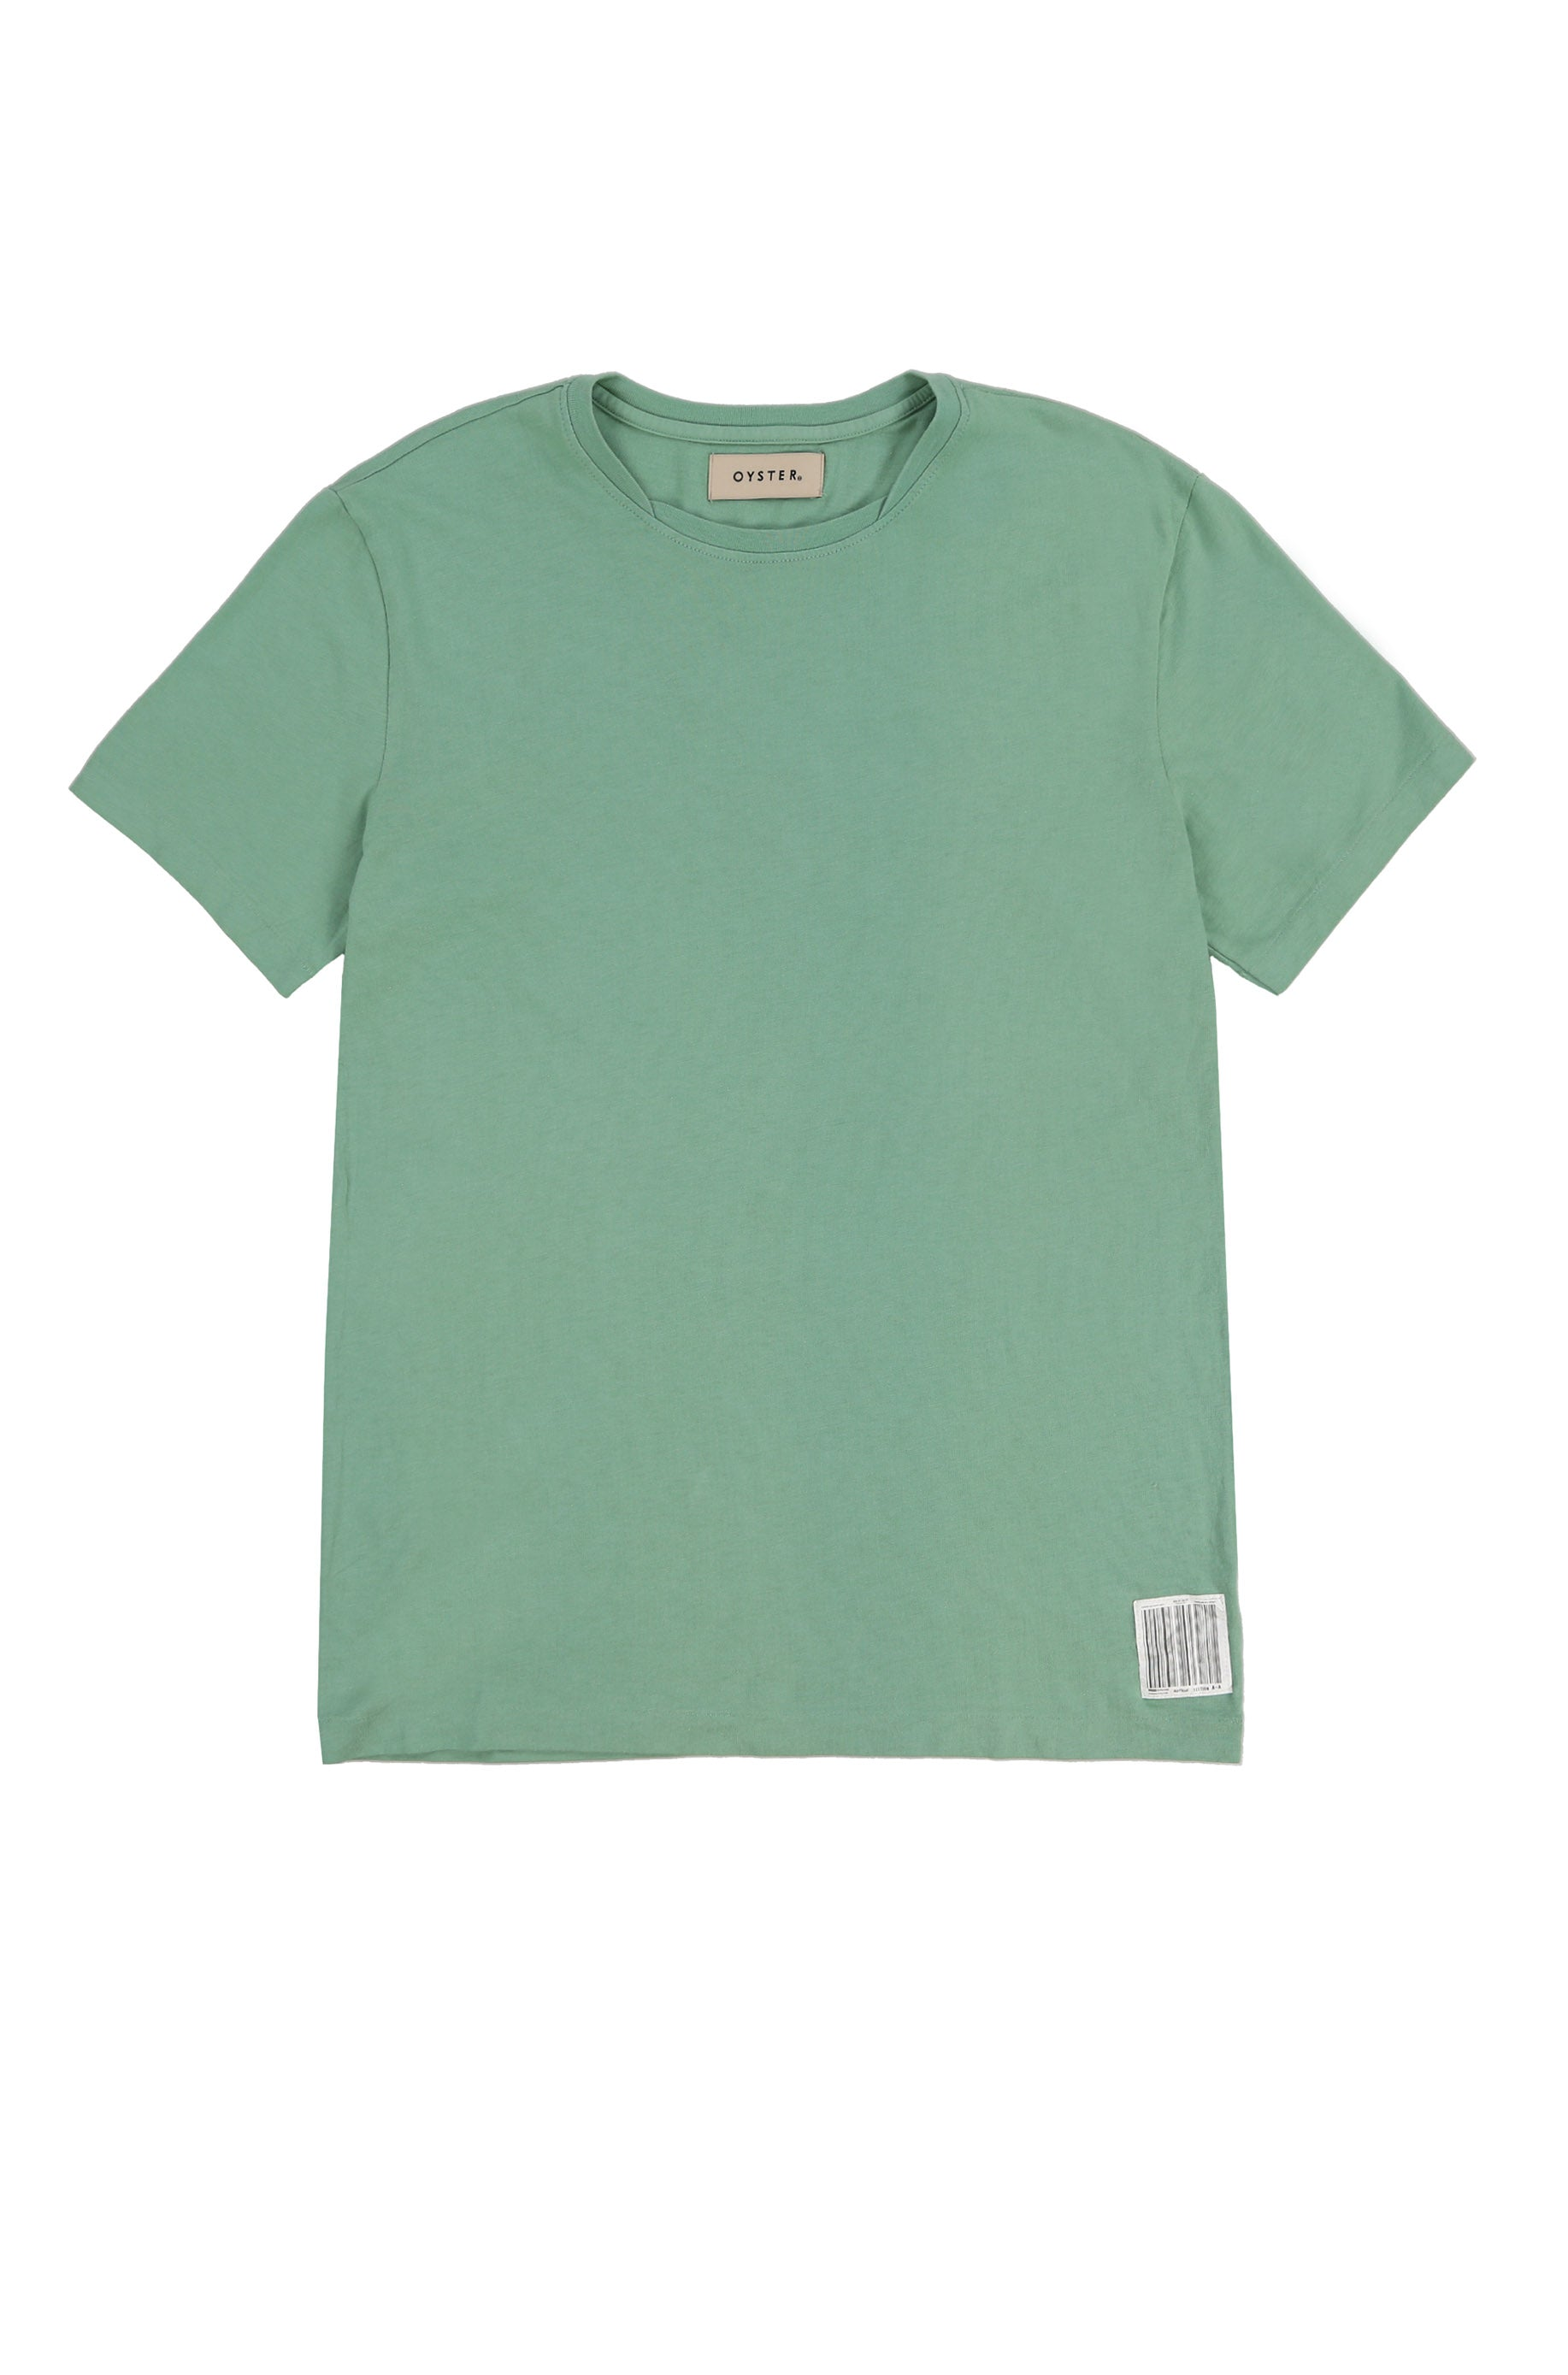 OYSTER NECK LAYERING TEE (GREEN)